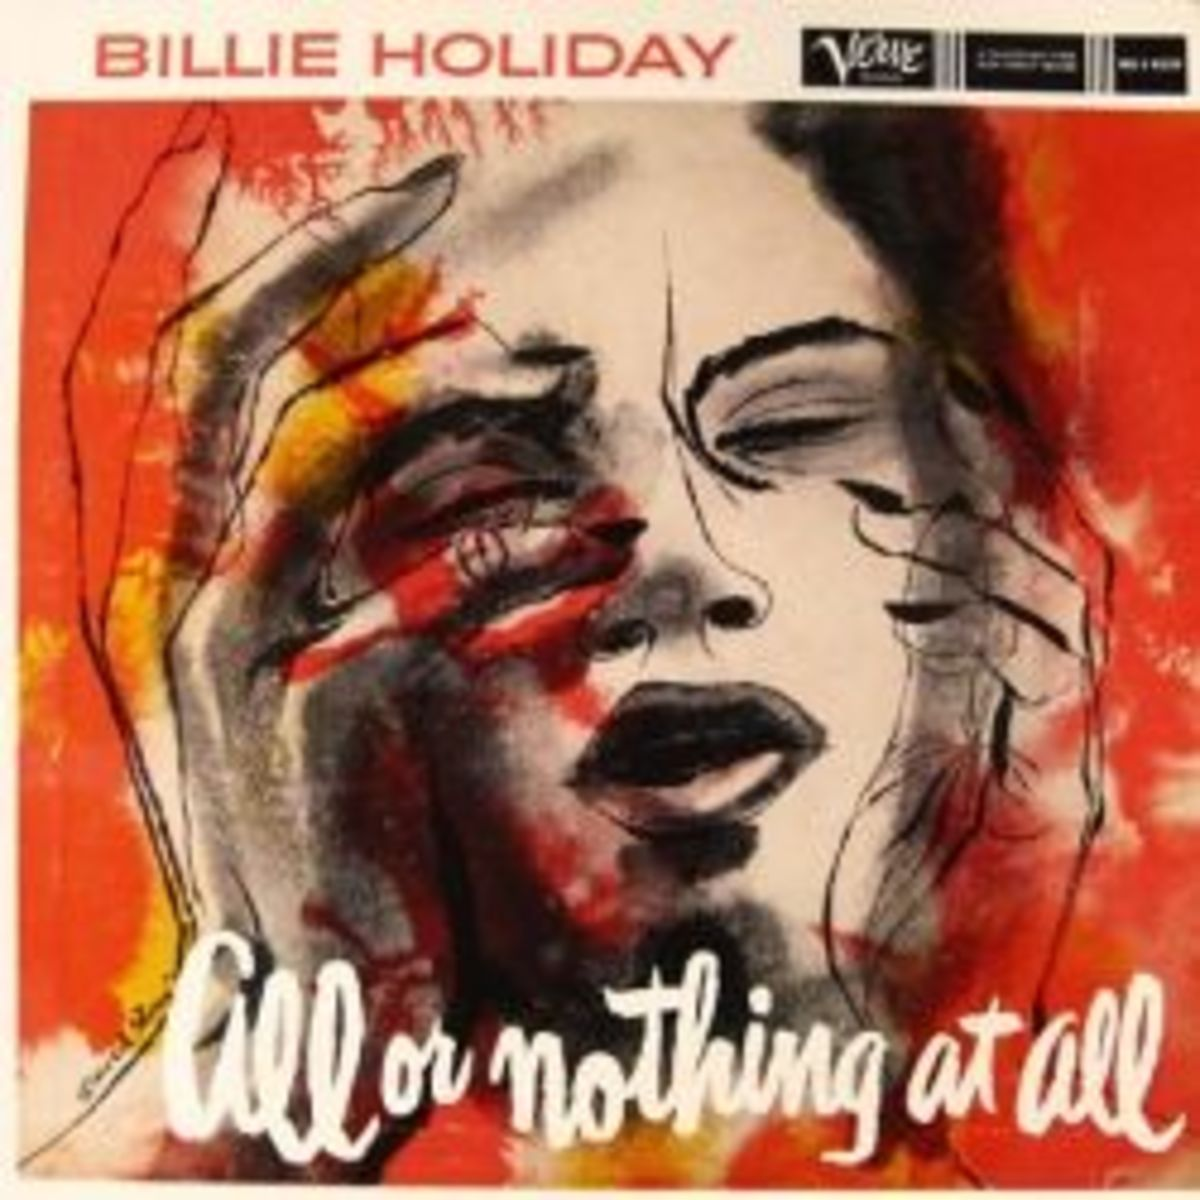 "Billie Holiday ""All Or Nothing At All"" Verve Records 8329 12"" LP Vinyl Record (1957)  Album Cover Art by David Stone Martin"